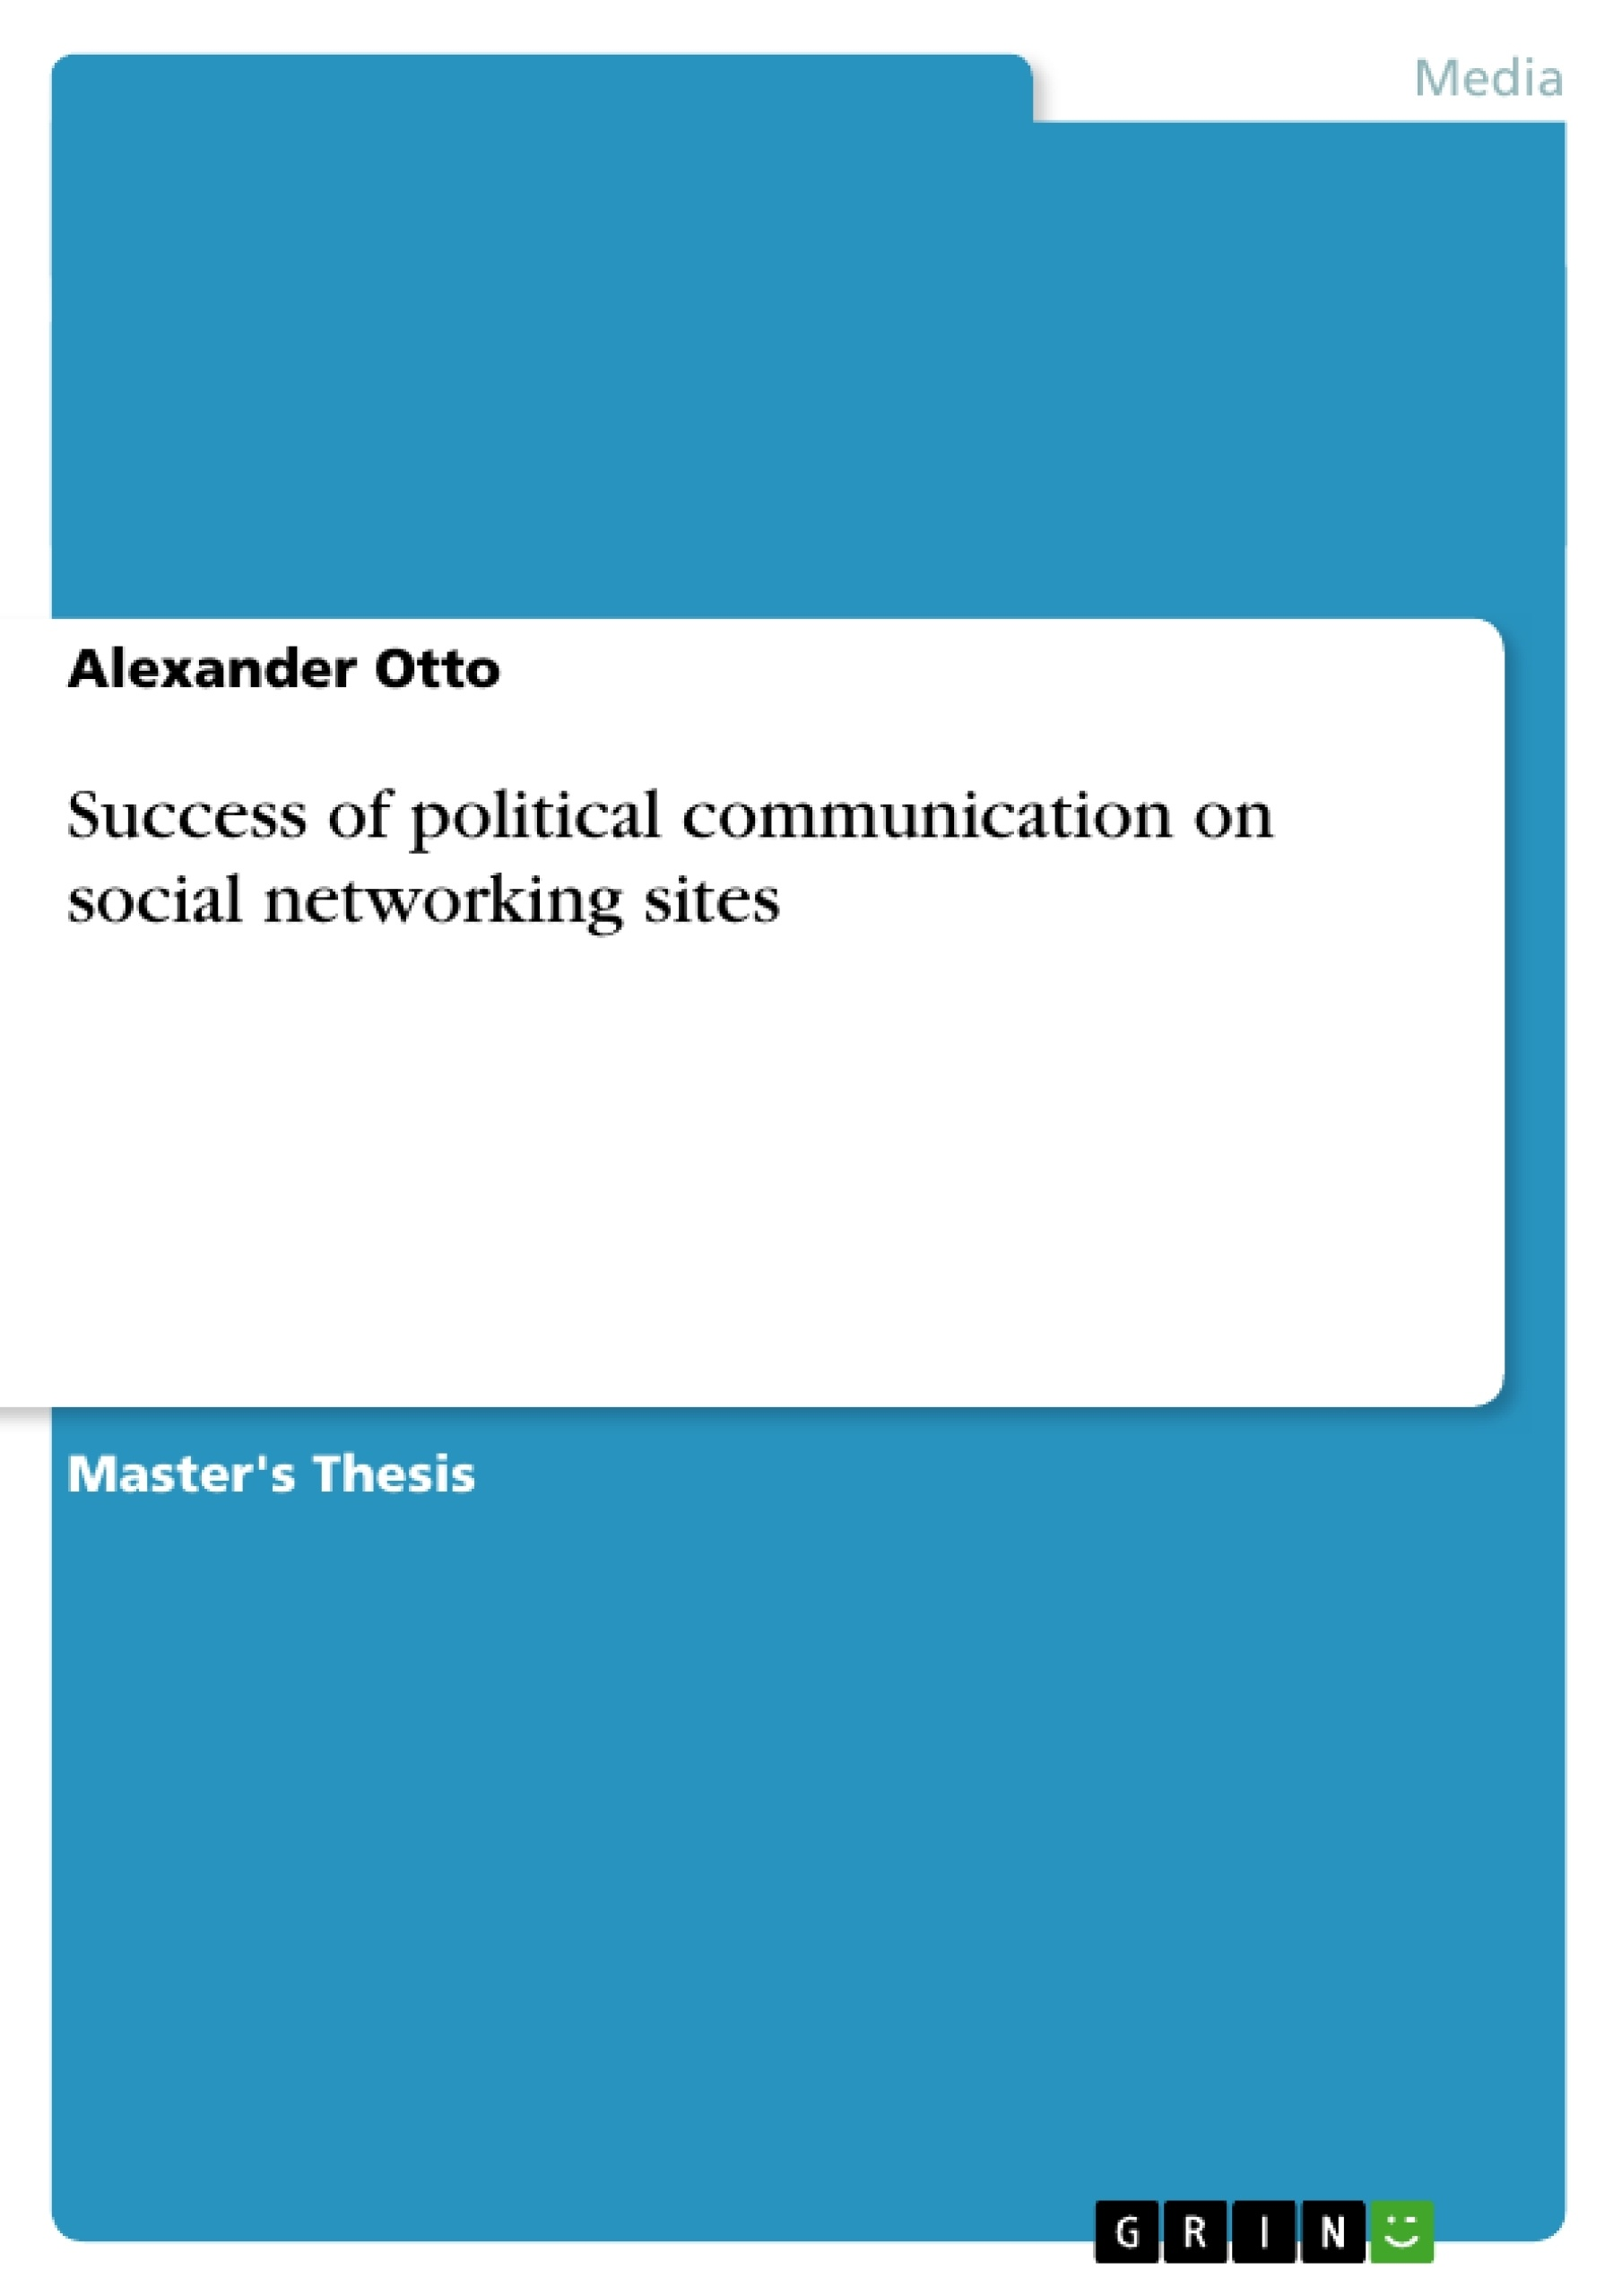 Title: Success of political communication on social networking sites